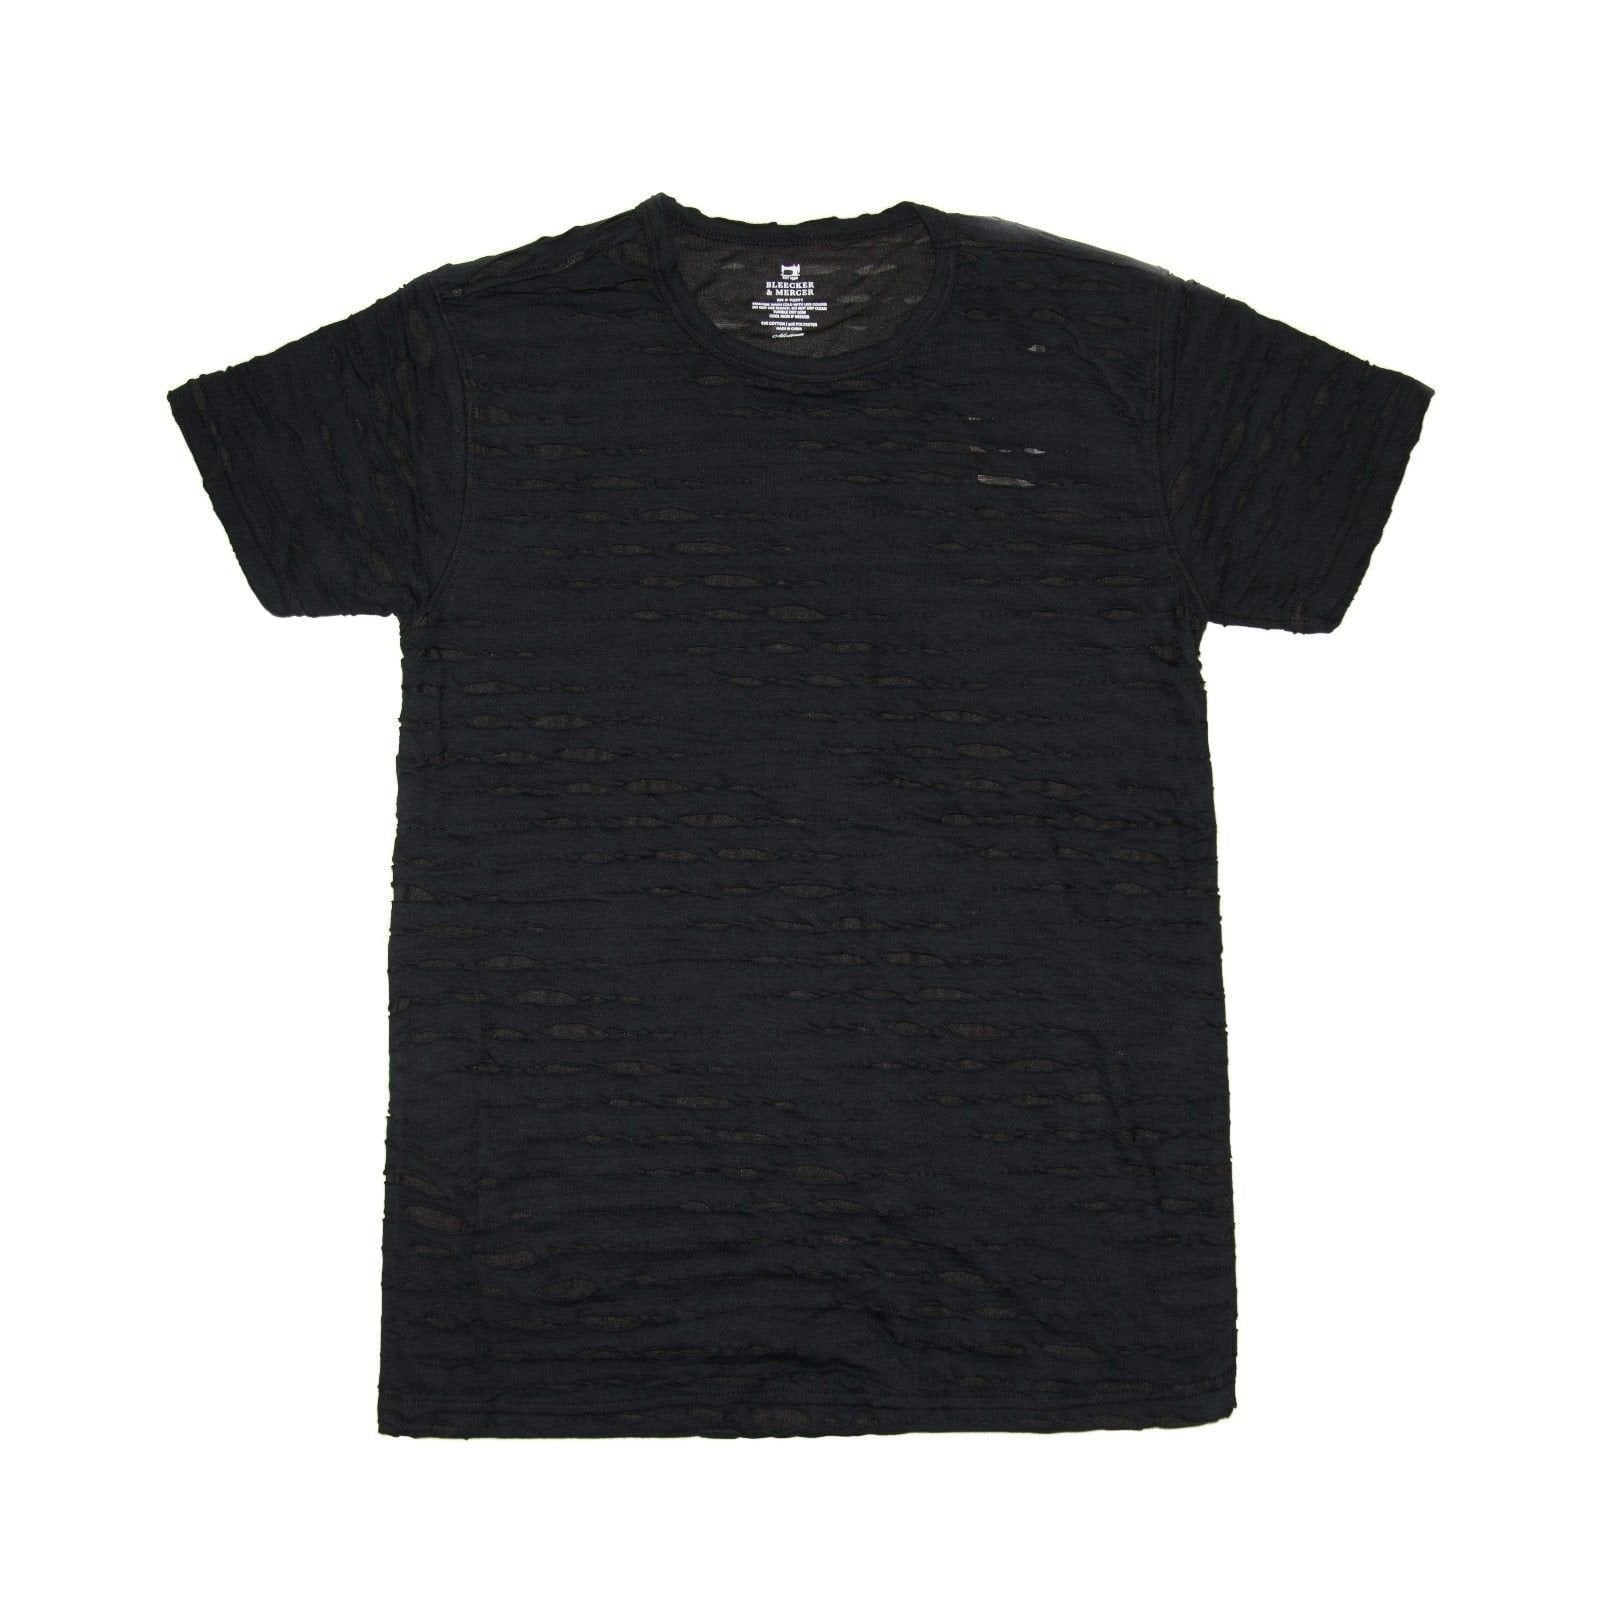 Bleeker & Mercer Distressed Crew Neck T- Shirt - Black